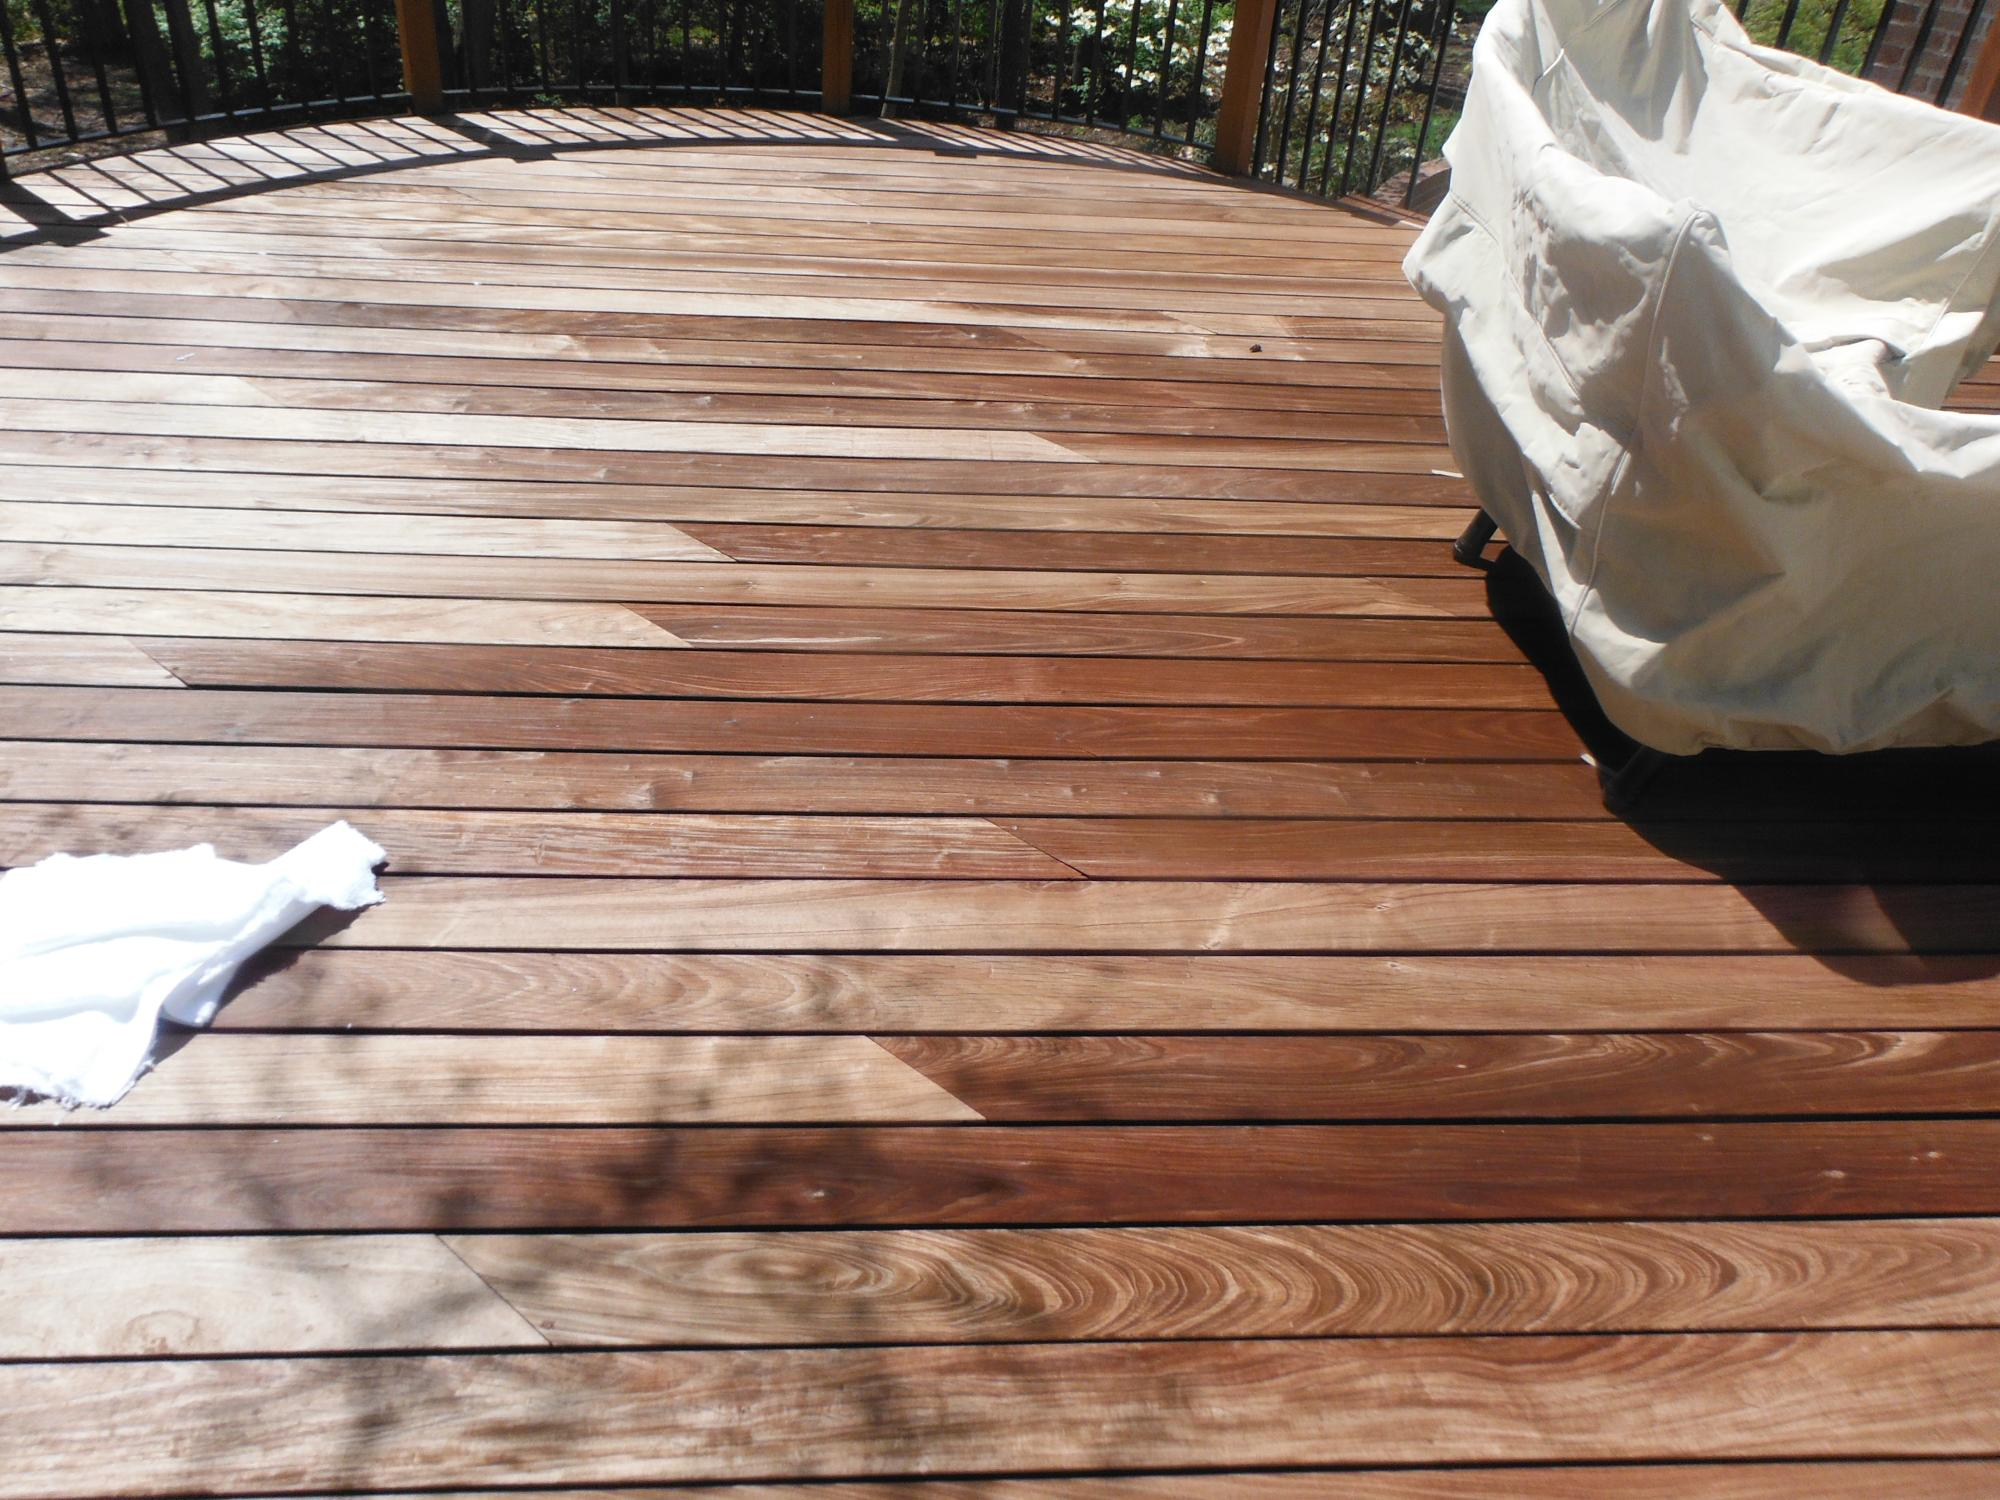 Cleaned IPE deck